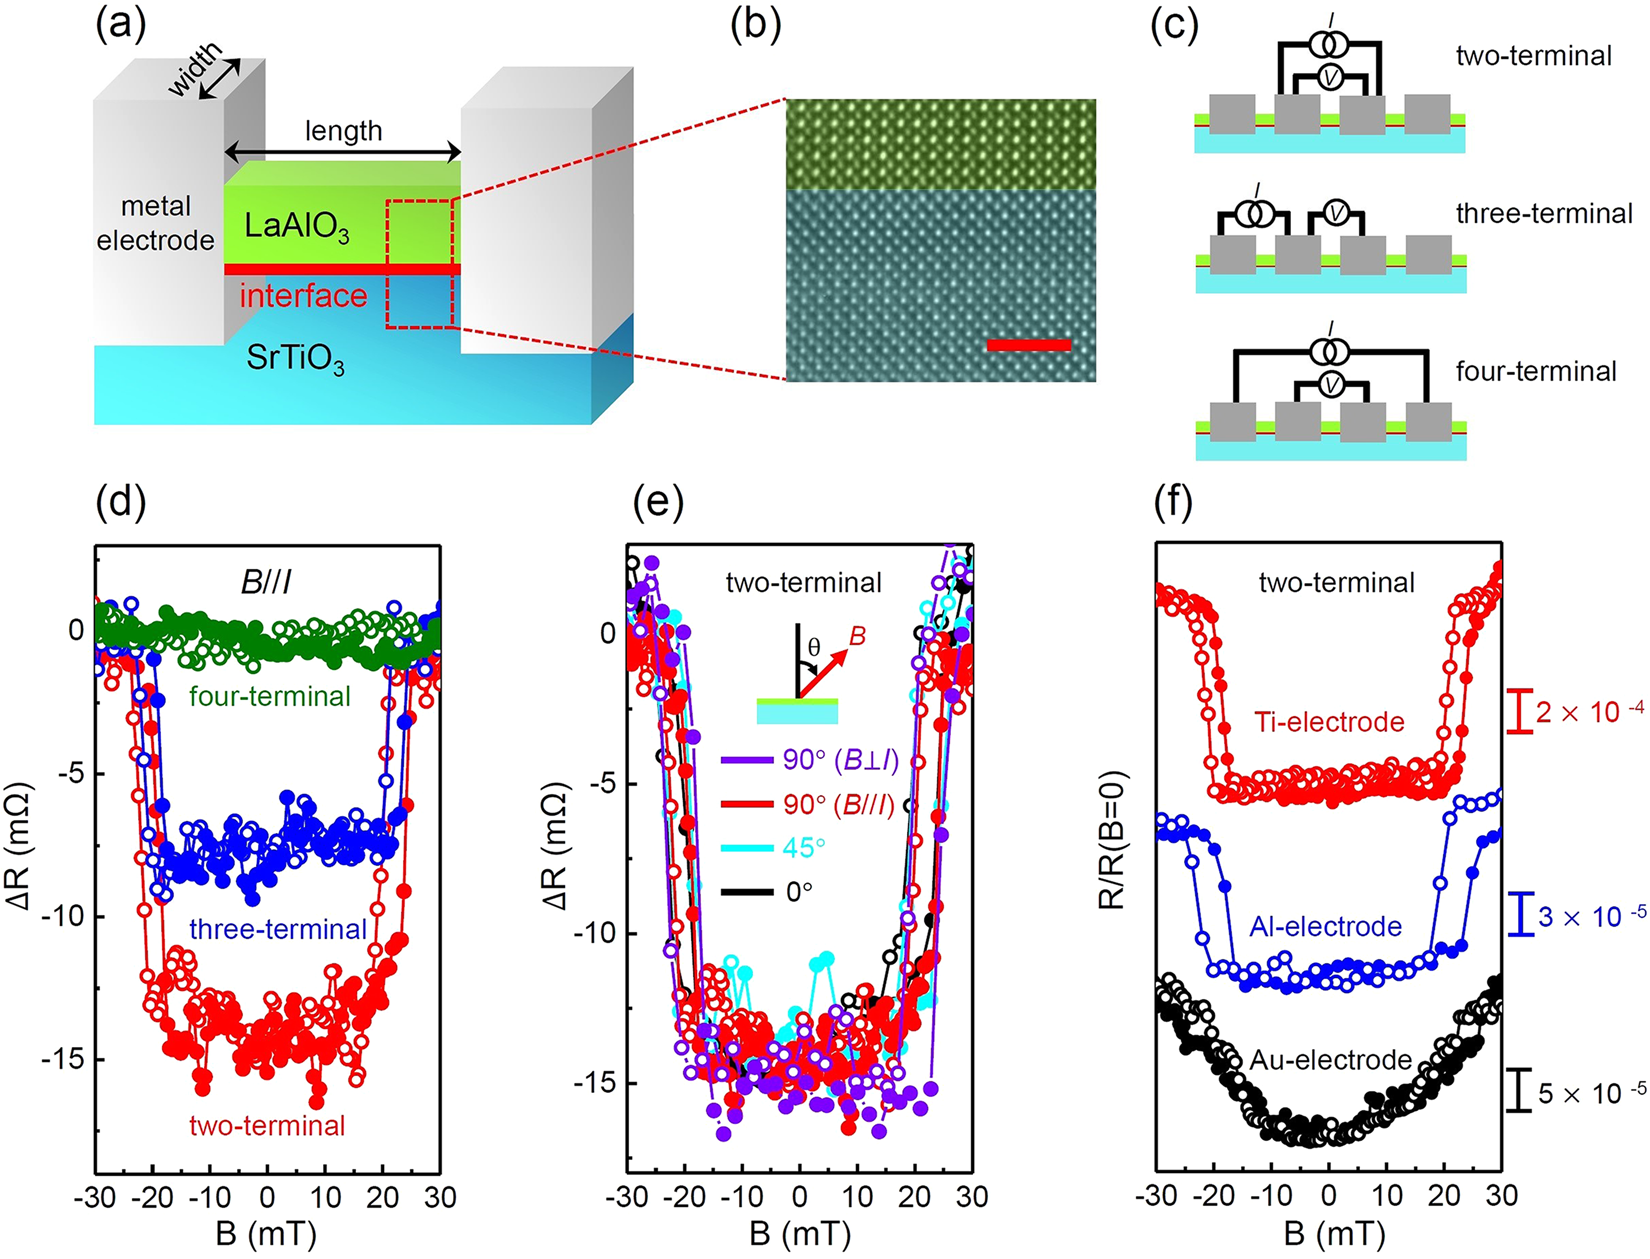 A Possible Superconductor Like State At Elevated Temperatures Near Field Sensor Utilizing Anomalous Hall On Effect Wiring Metal Electrodes In An Laalo 3 Srtio Interface Scientific Reports